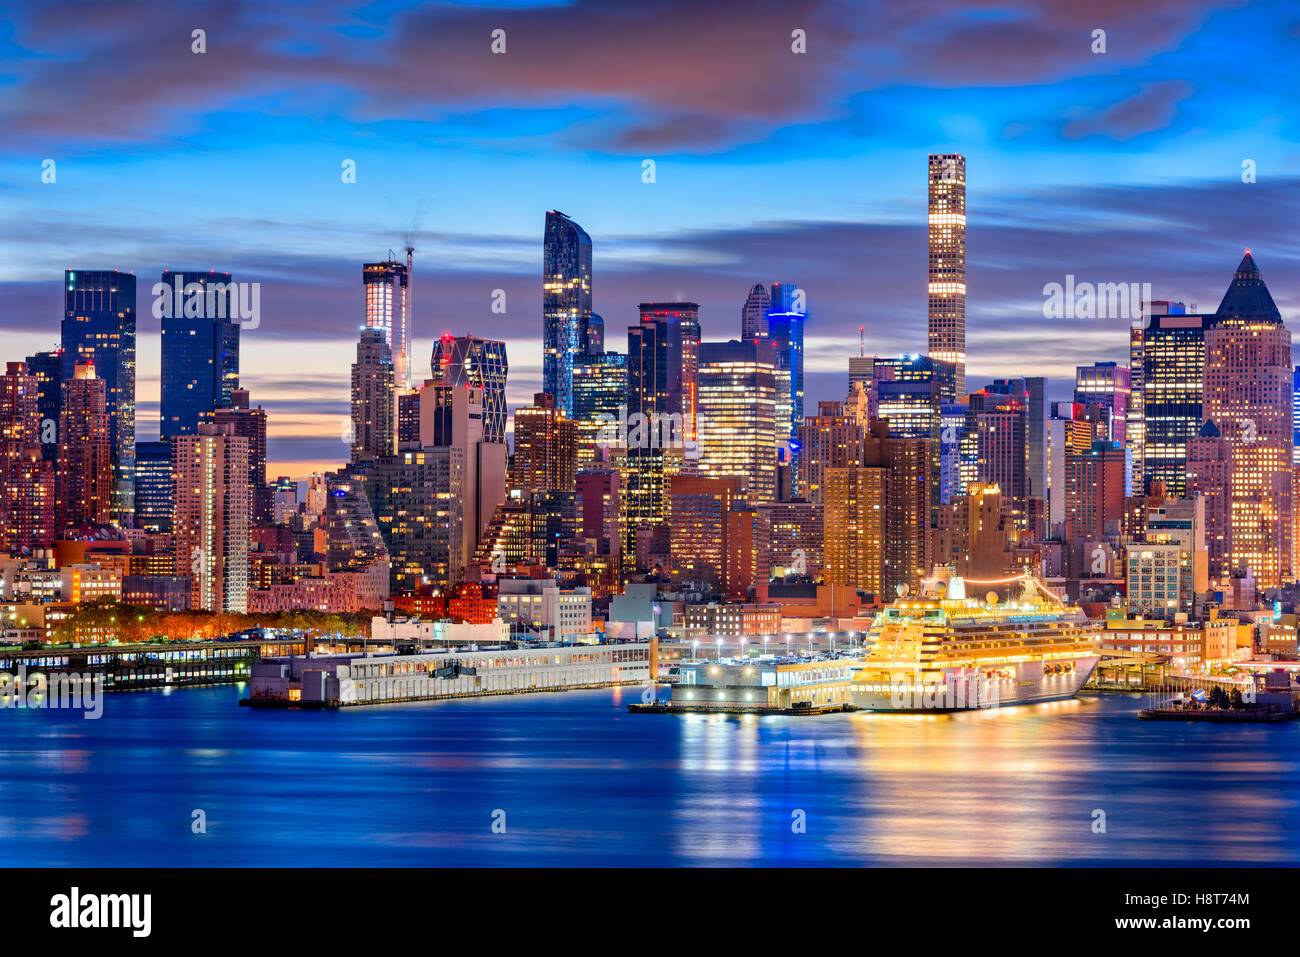 New York City skyline in Midtown Manhattan at dawn. - Stock Image